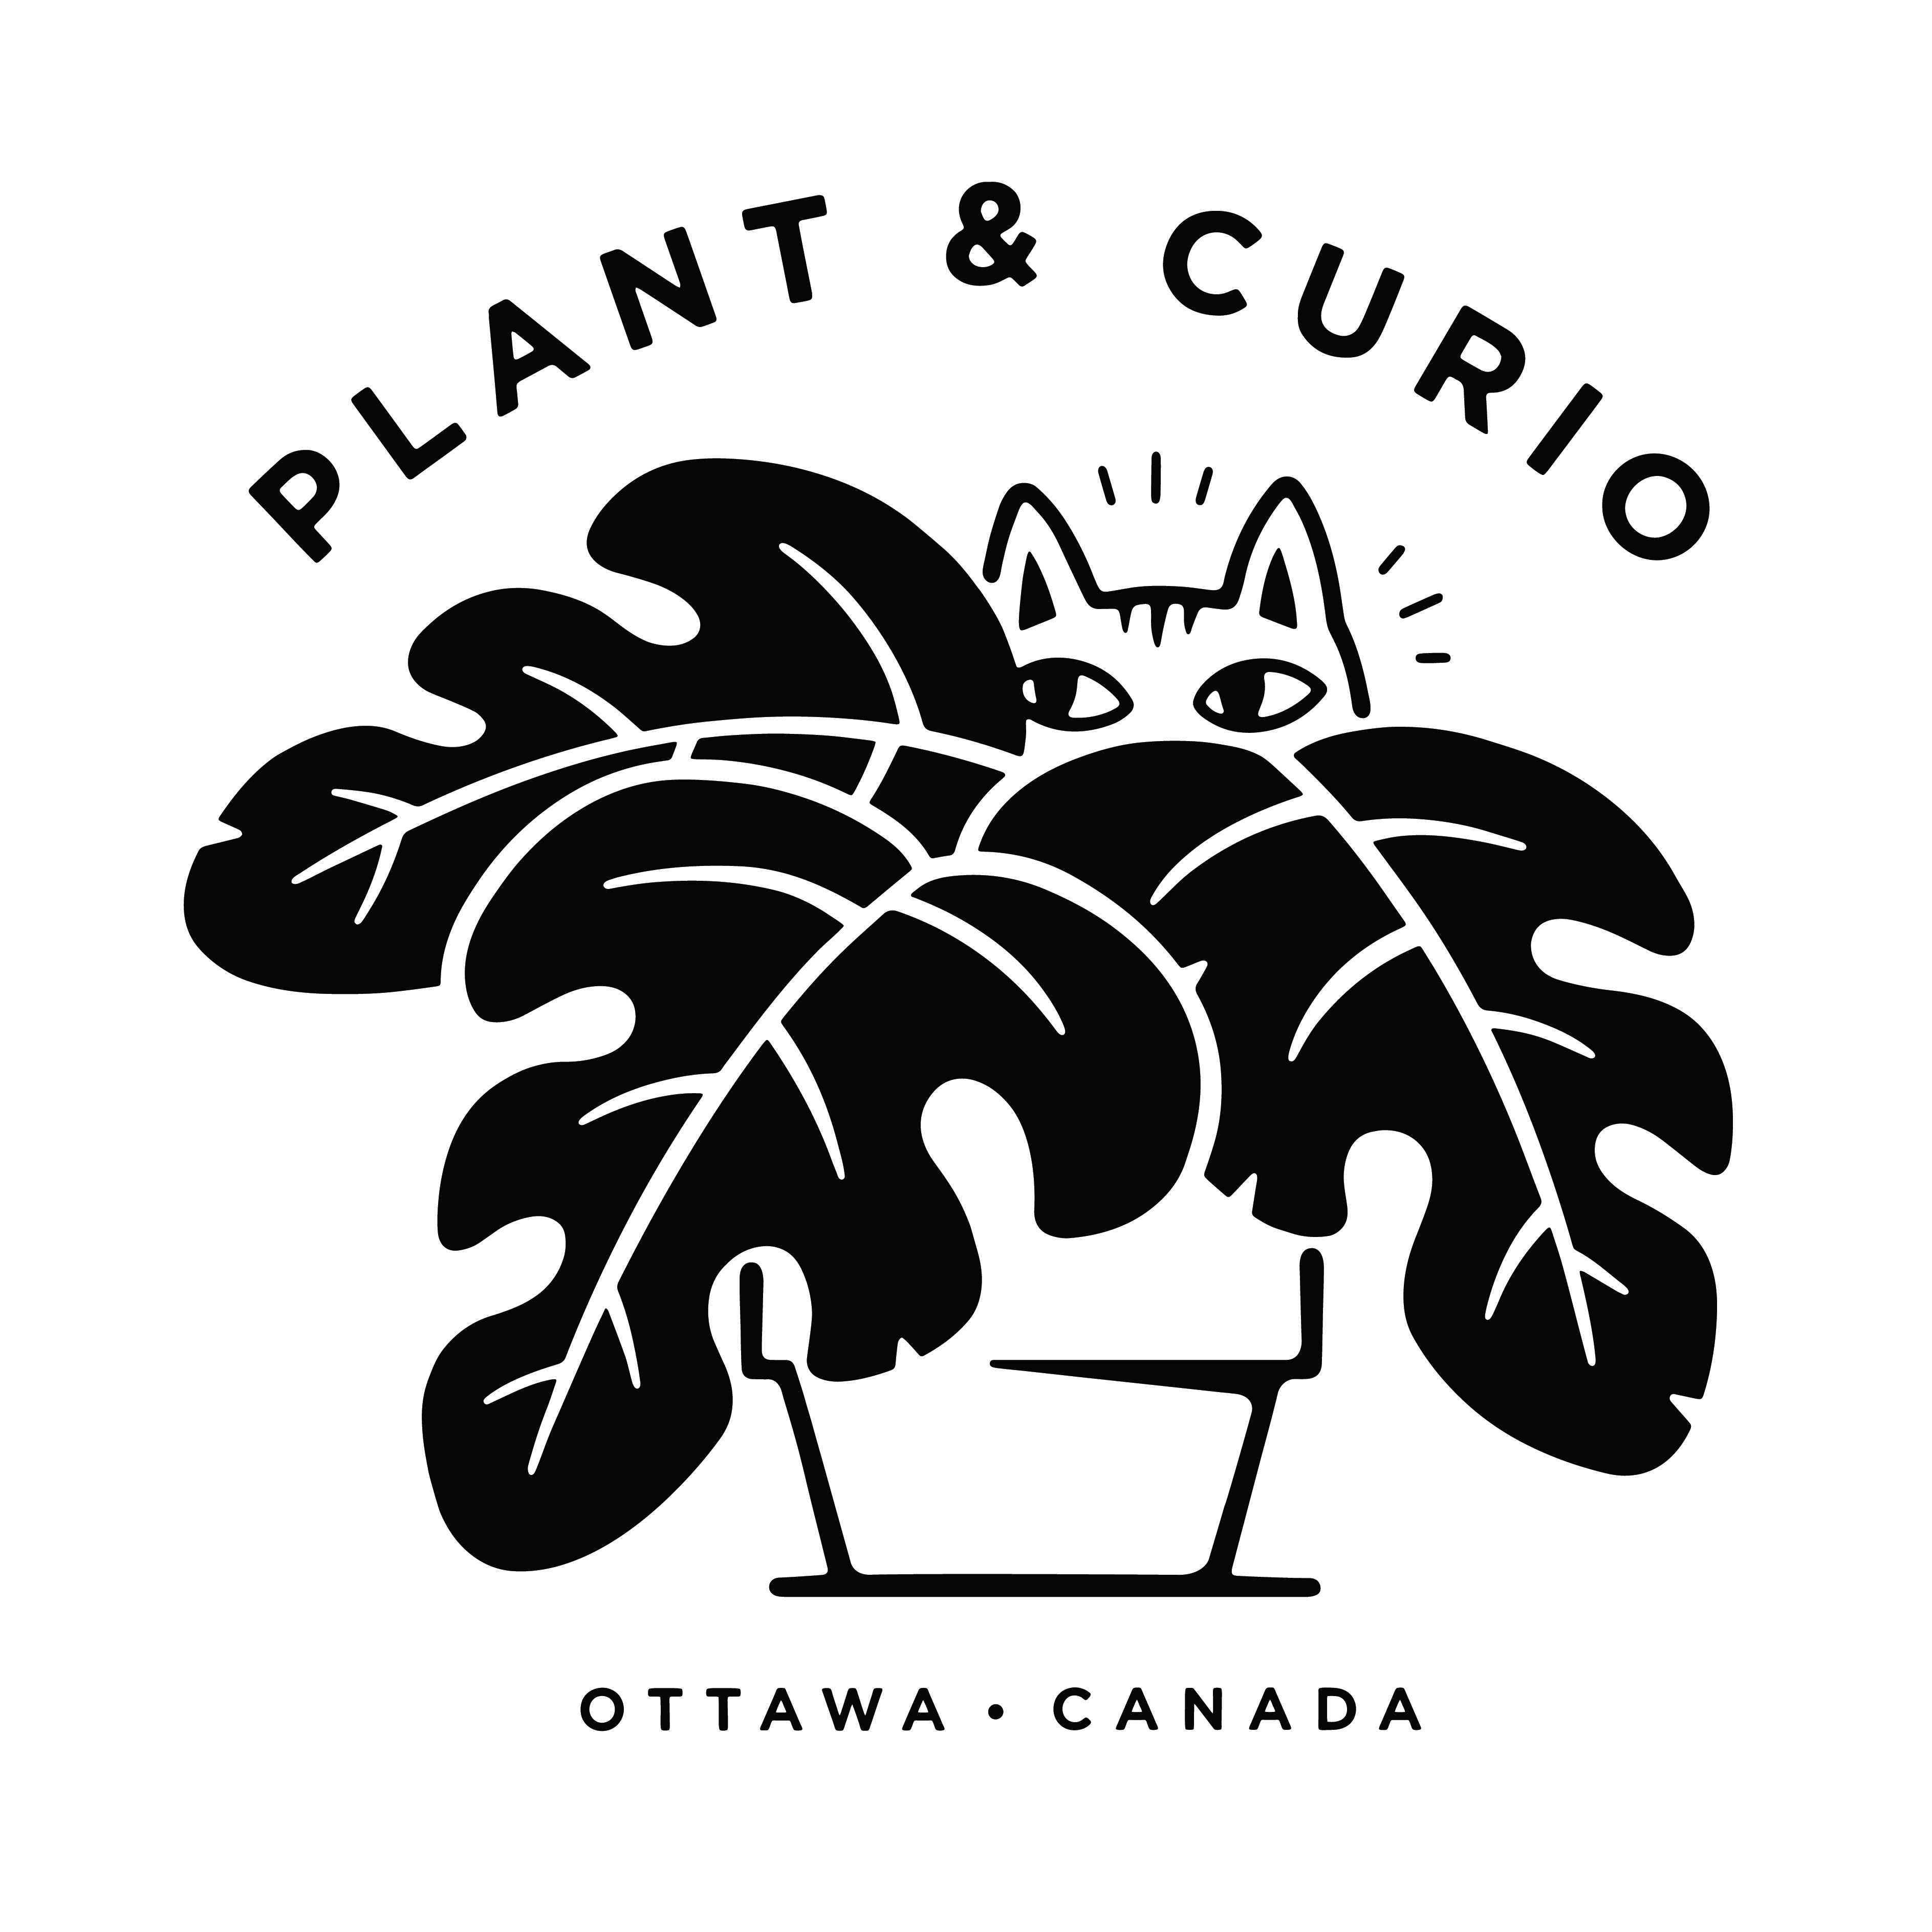 Plant & Curio logo with cat peeking out from behind house plant.